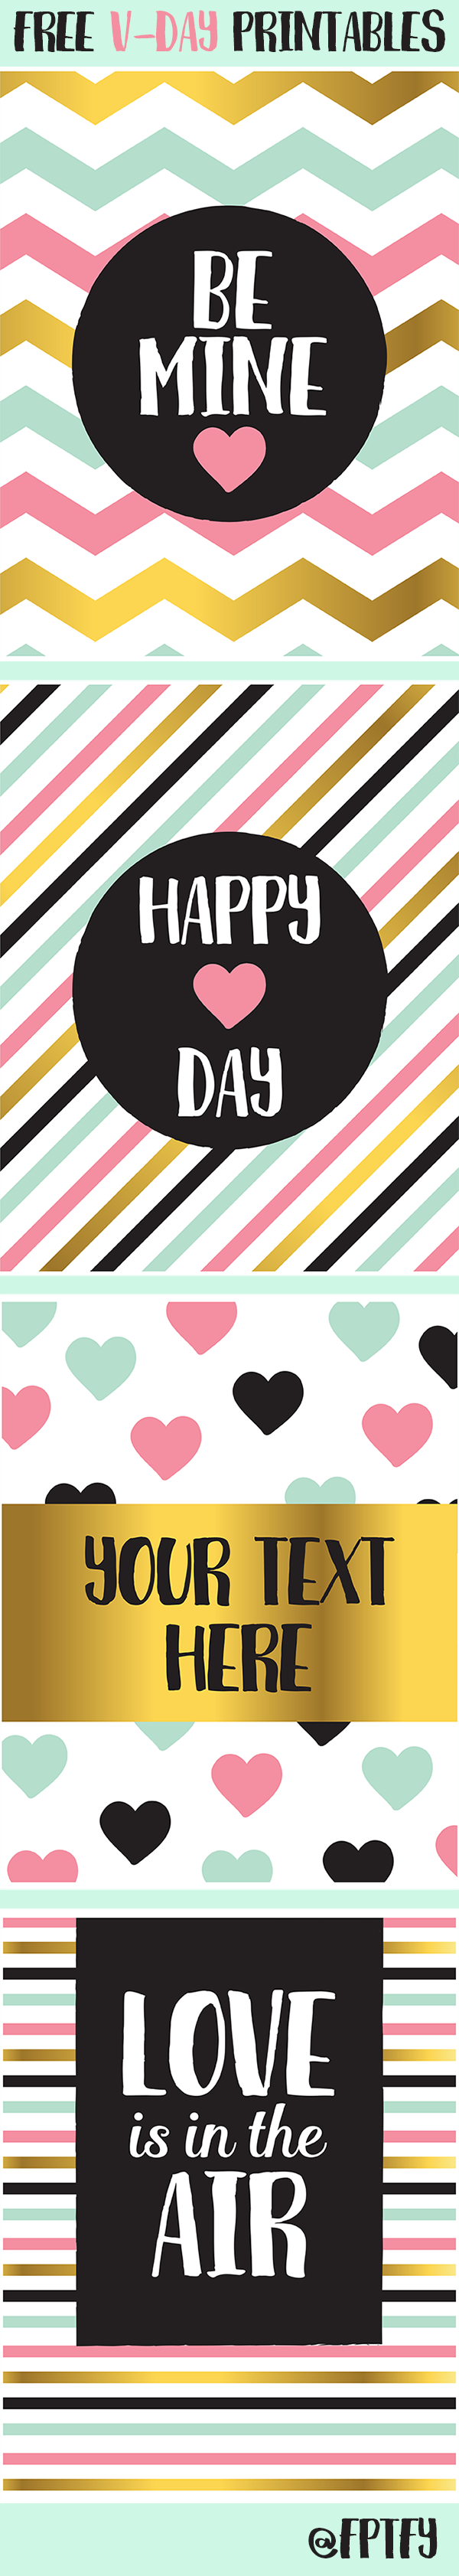 Today's freebies are fourlovely 8.5 x 11 Valentines Day images that can be resized to the perfect size you need them to be with any photo editing software! This color combo is one of my favorites because it just makes so happy when Isee it! Each page can be downloaded below: Be Mine   …